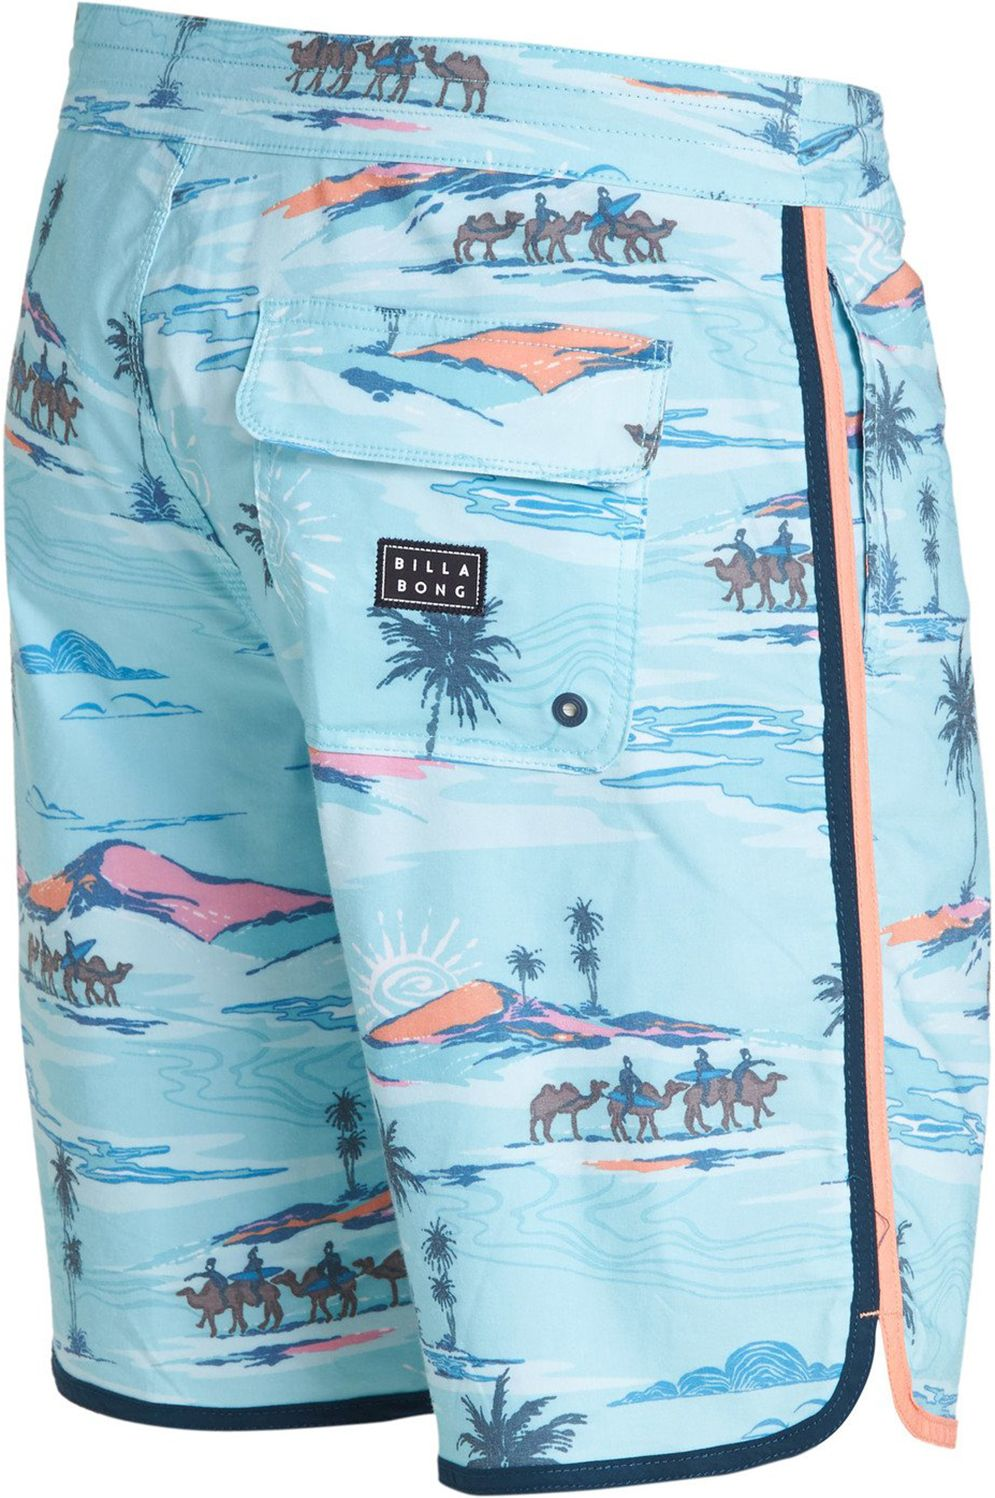 Boardshorts Billabong 73 LINEUP LT Coastal